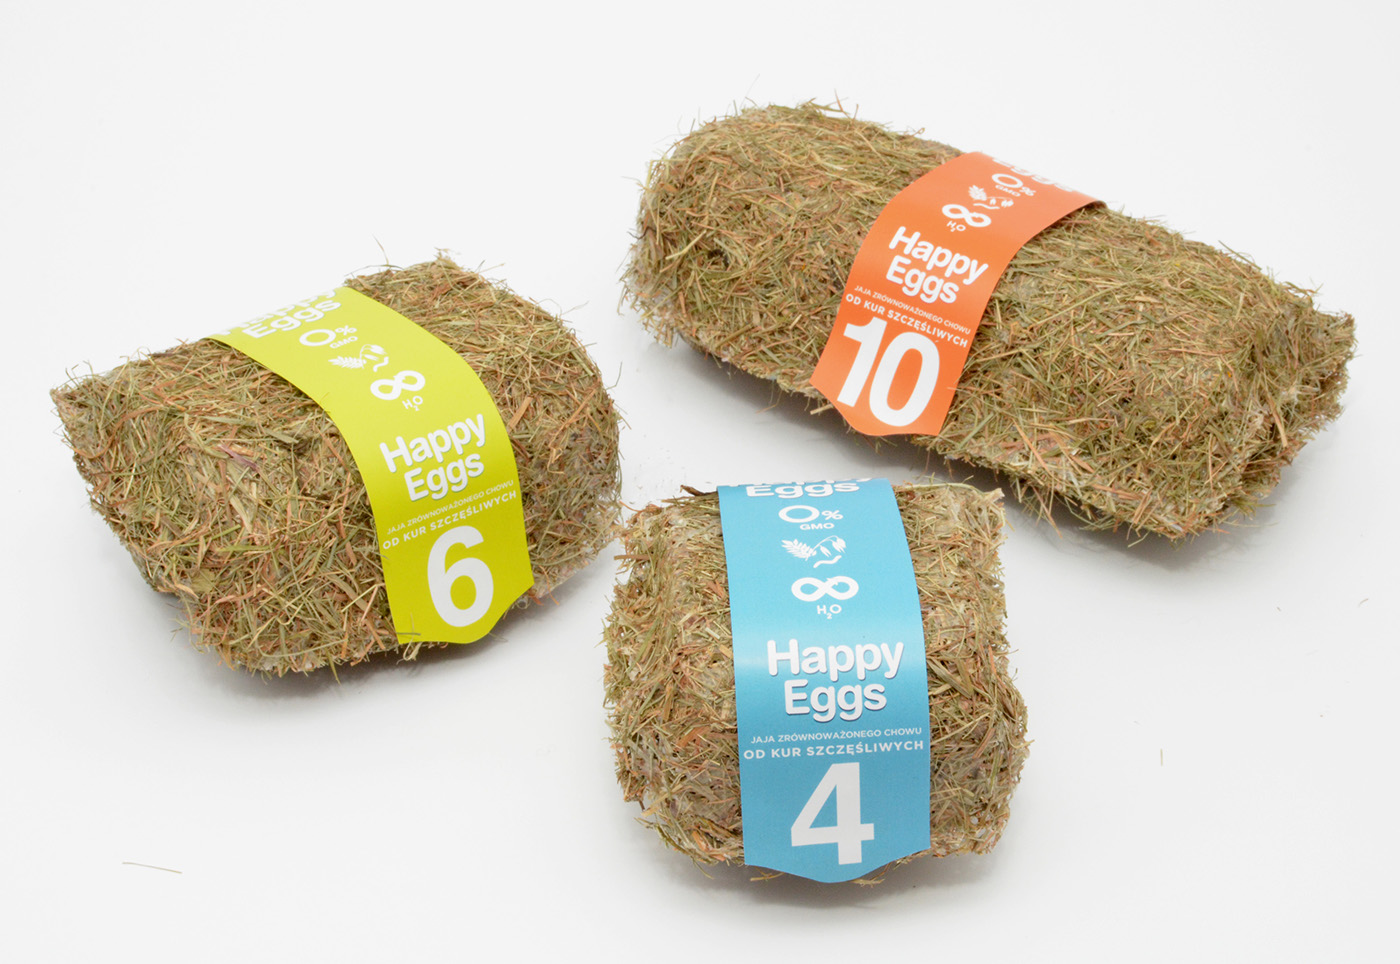 Eggs in natural straw box